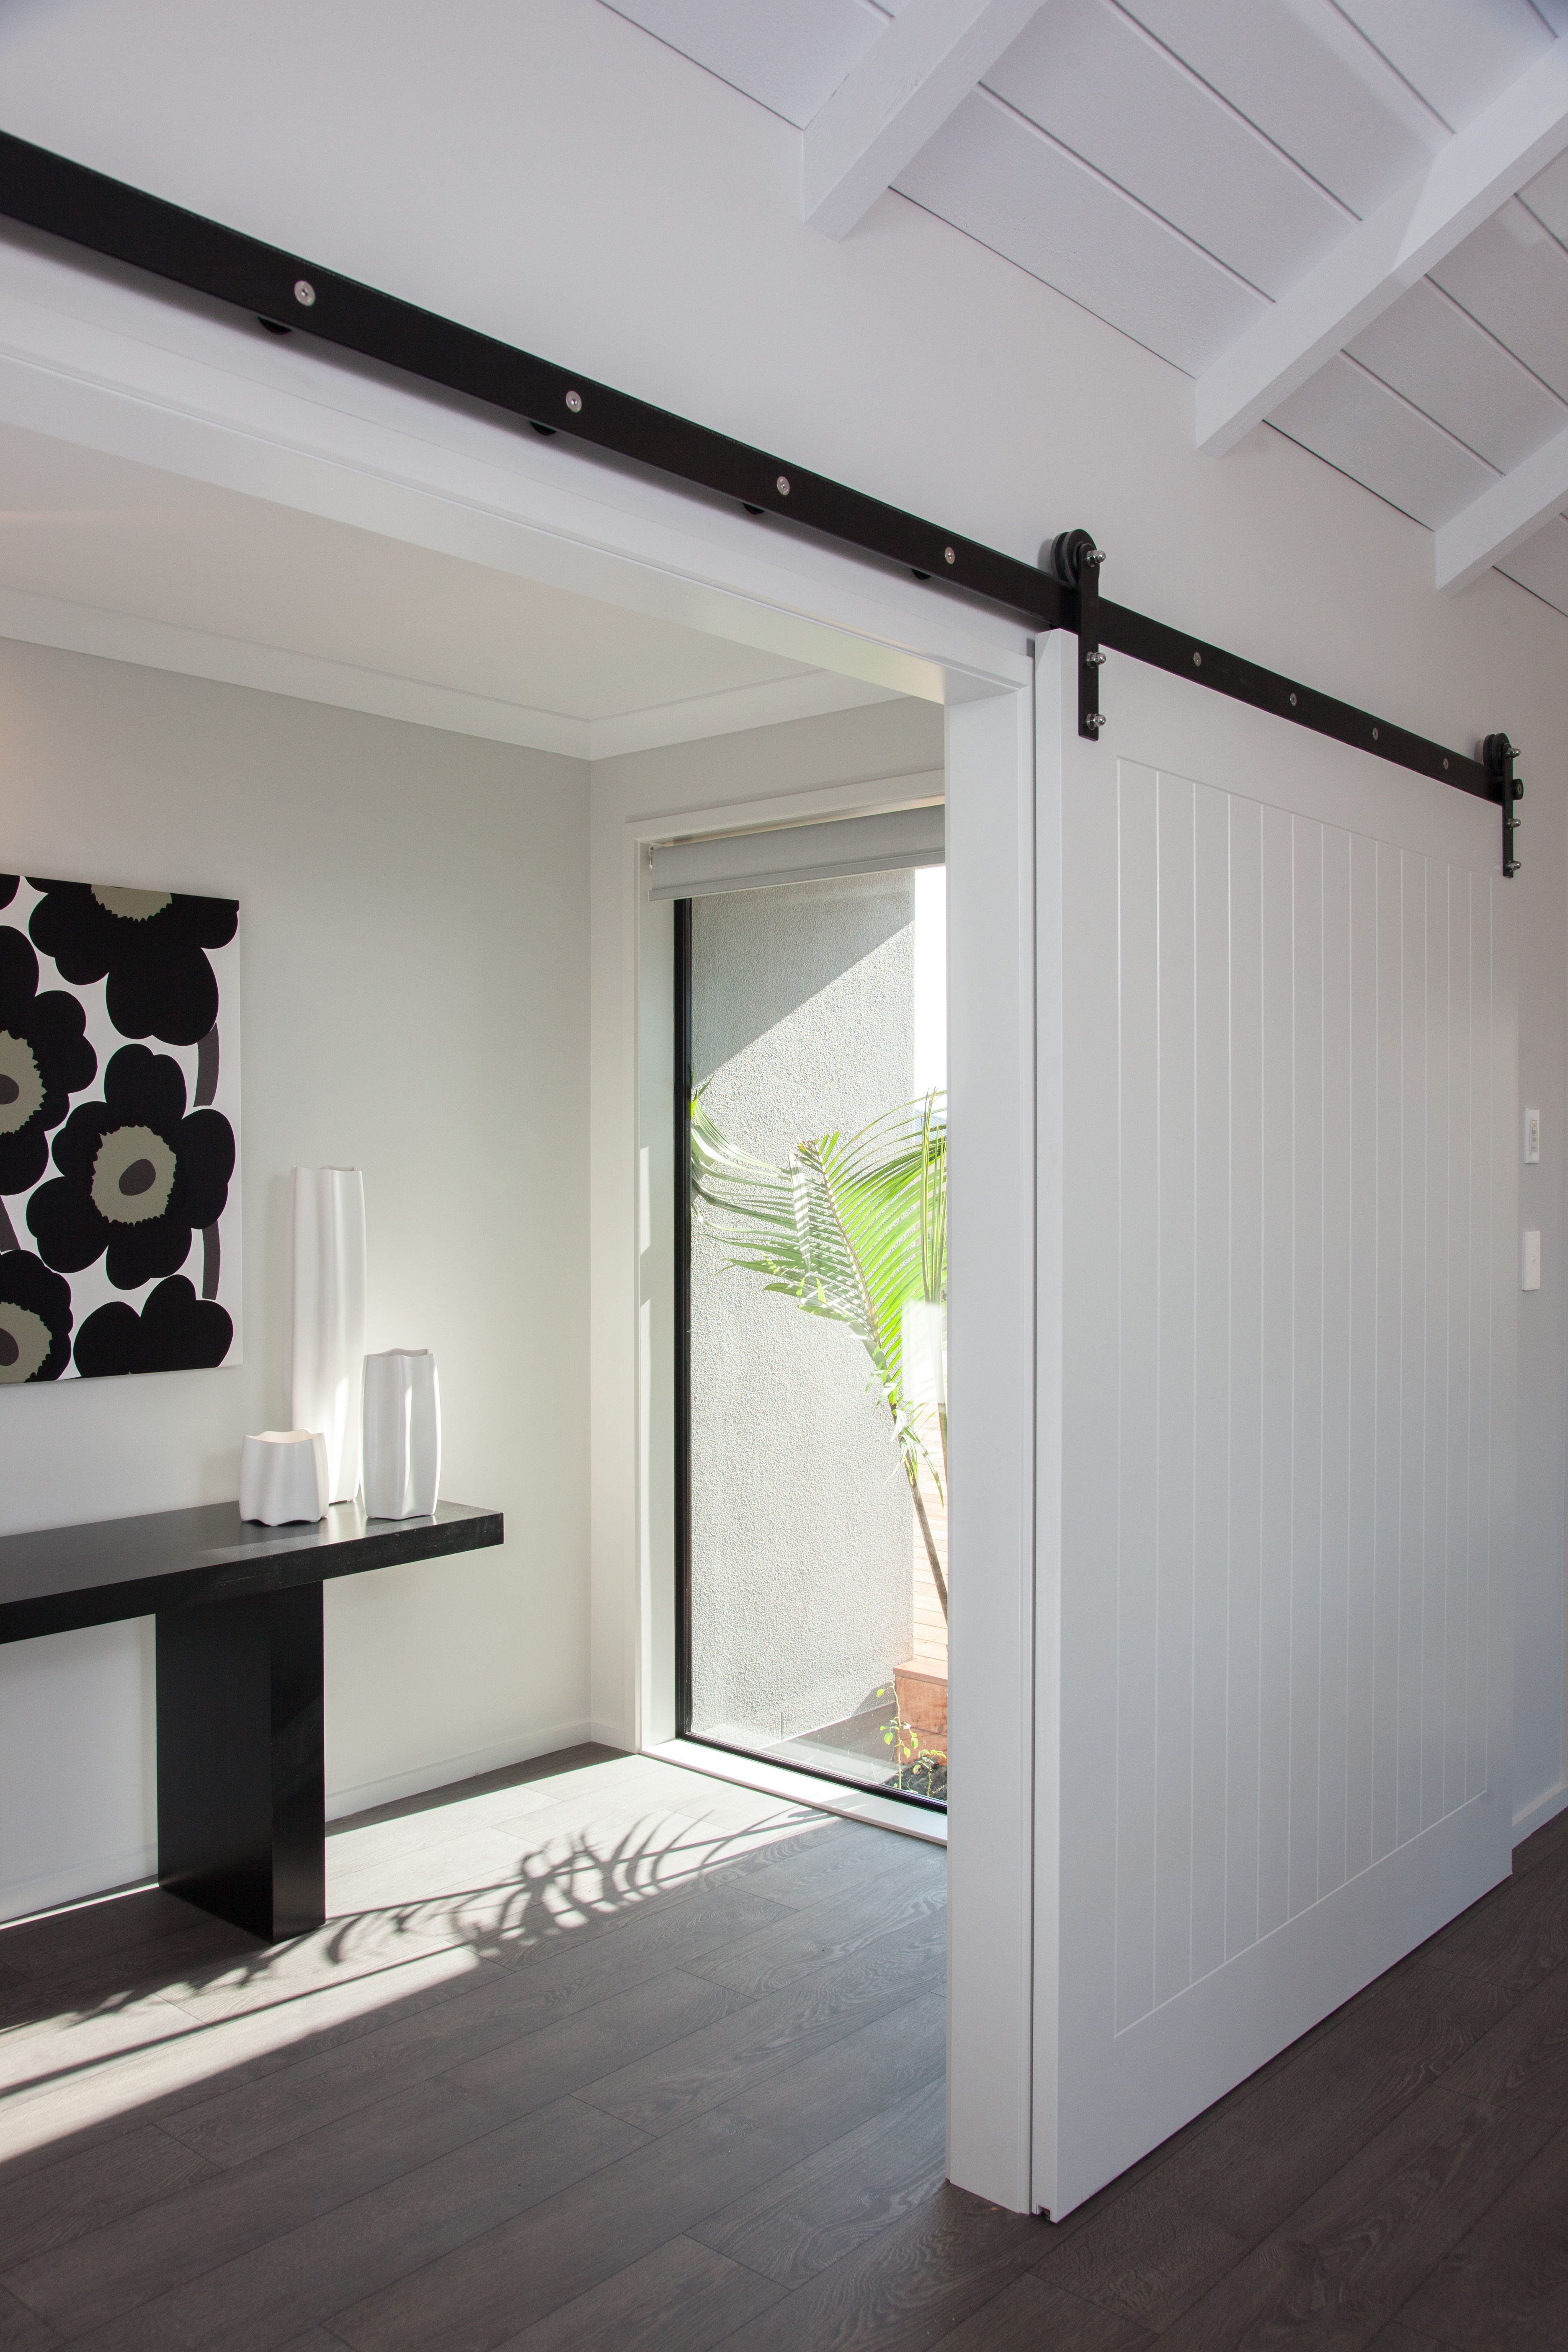 The industrial style door separates the entrance from the